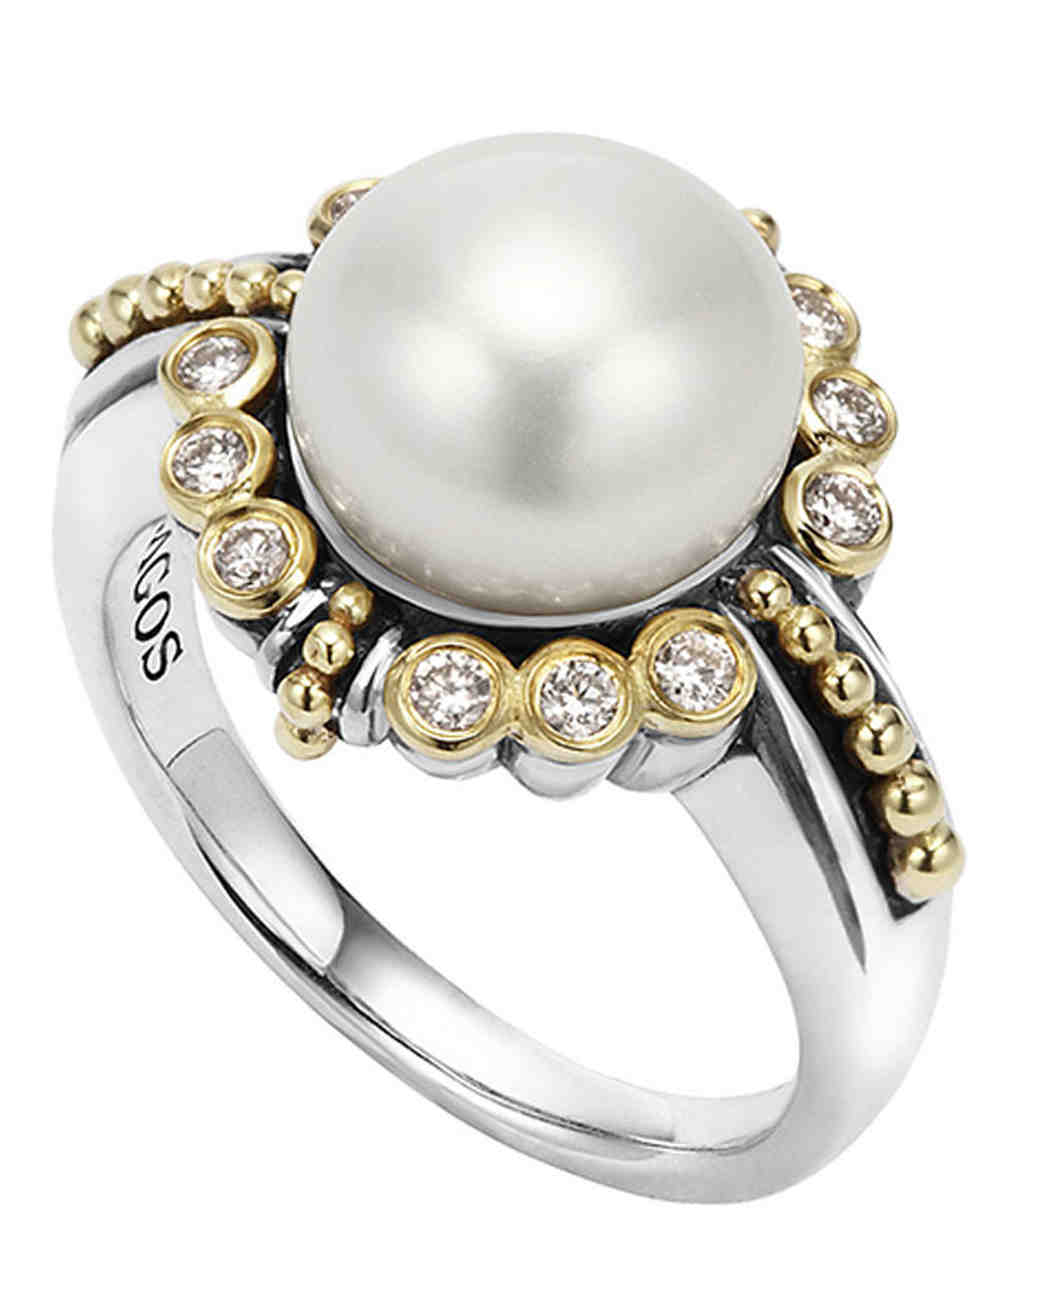 Watch - Wedding Pearl rings with diamonds video